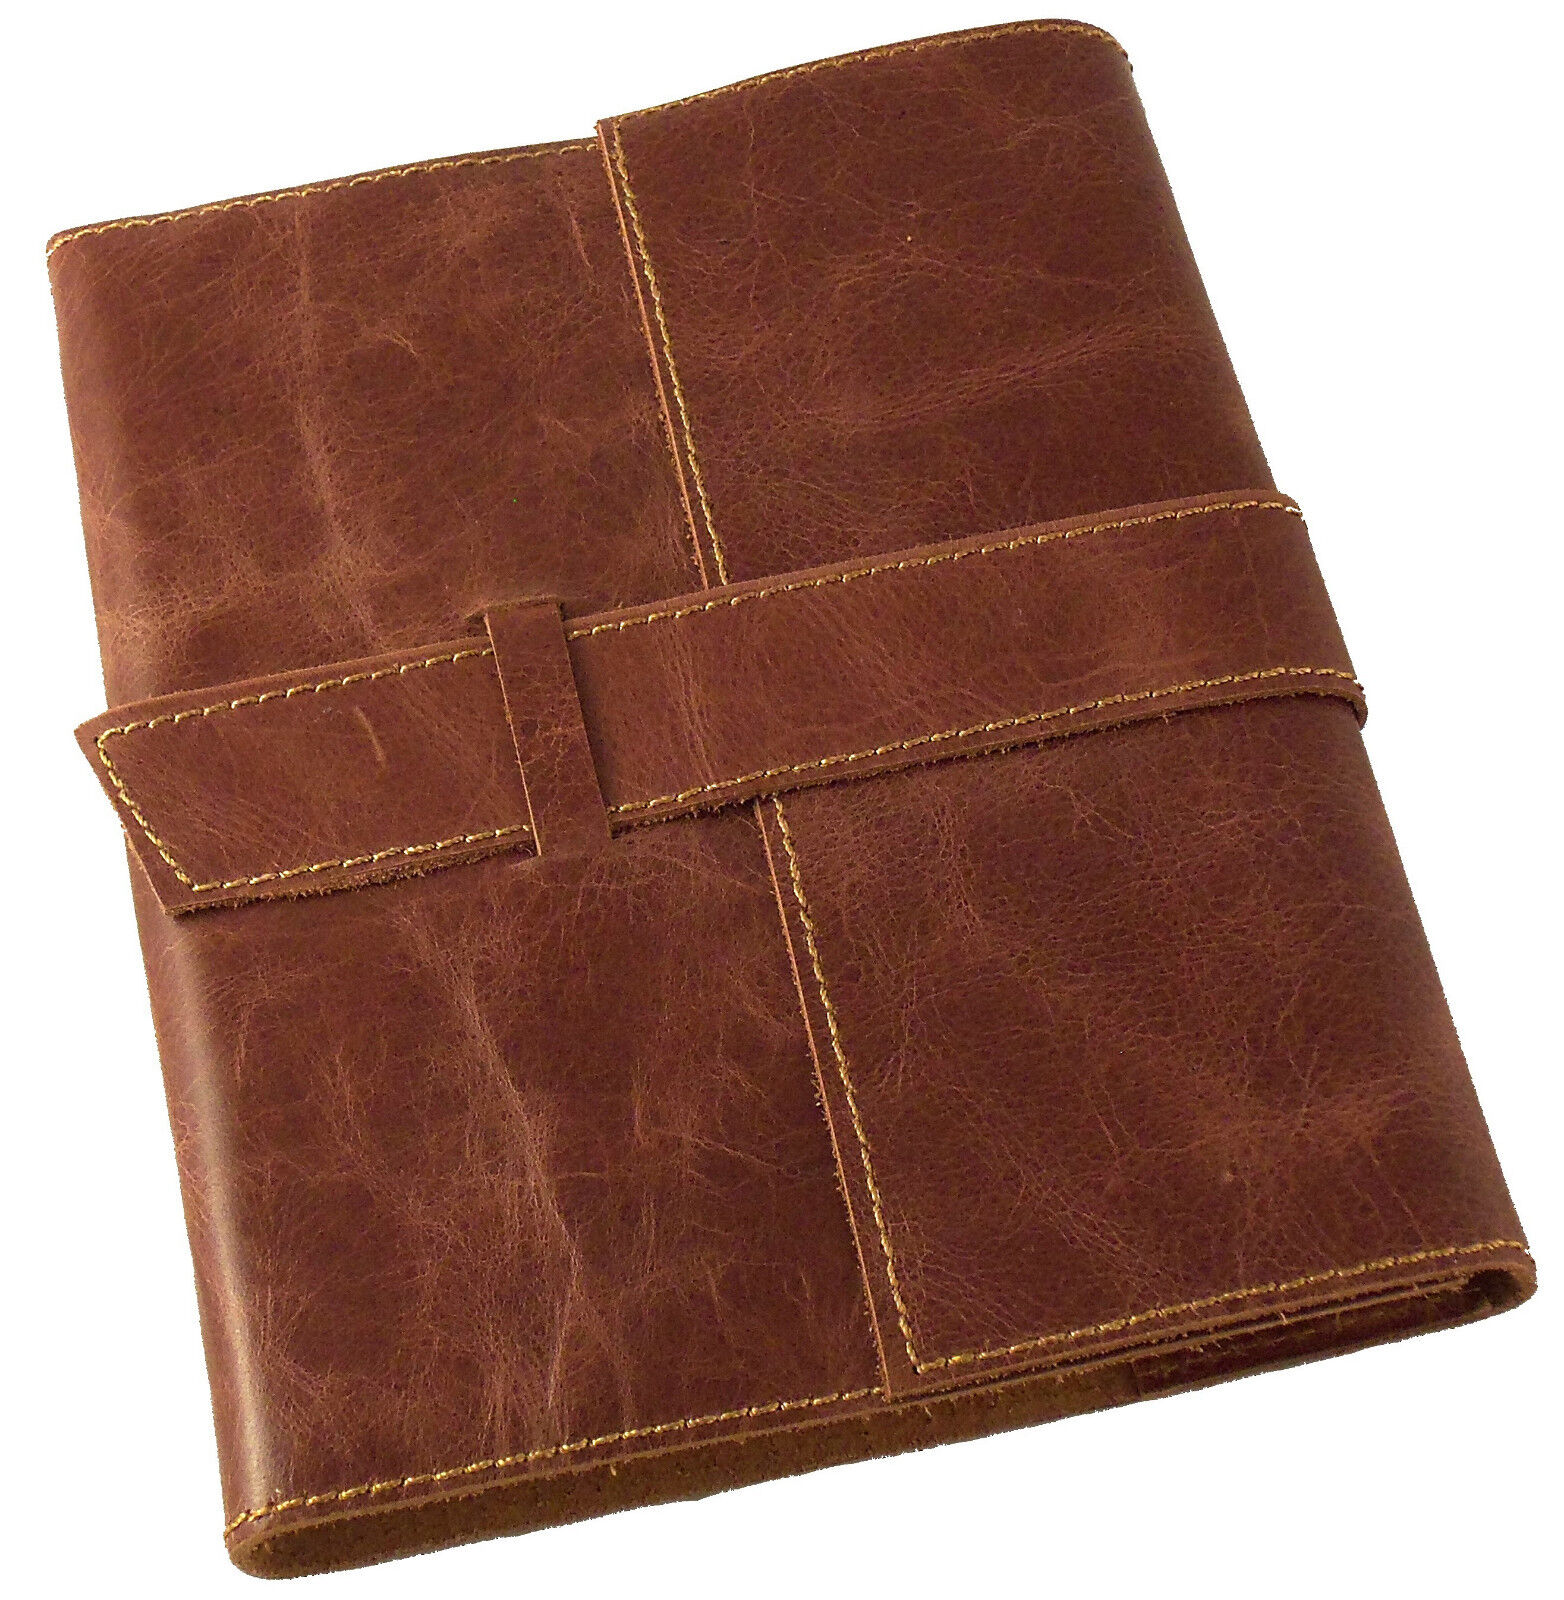 Refillable Leather Journal Sketchbook Travel Notebook Blank Diary Vintage Rustic